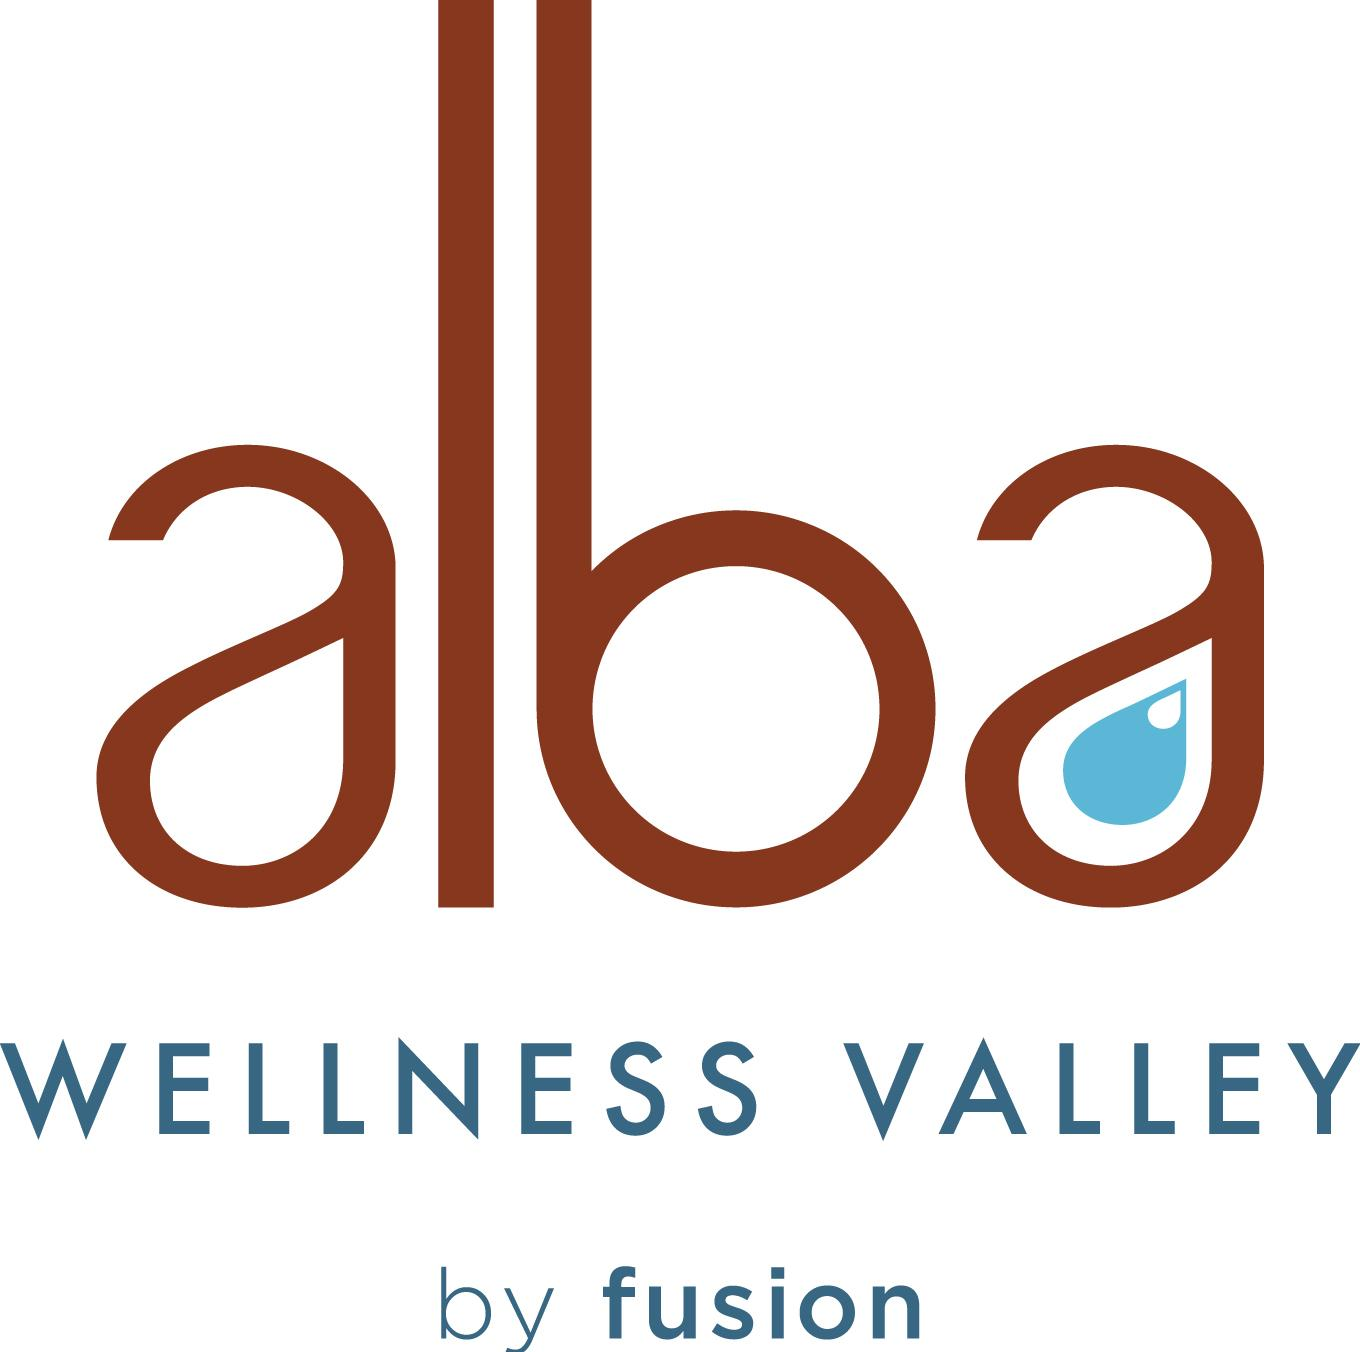 ALBA WELLNESS VALLEY BY FUSION